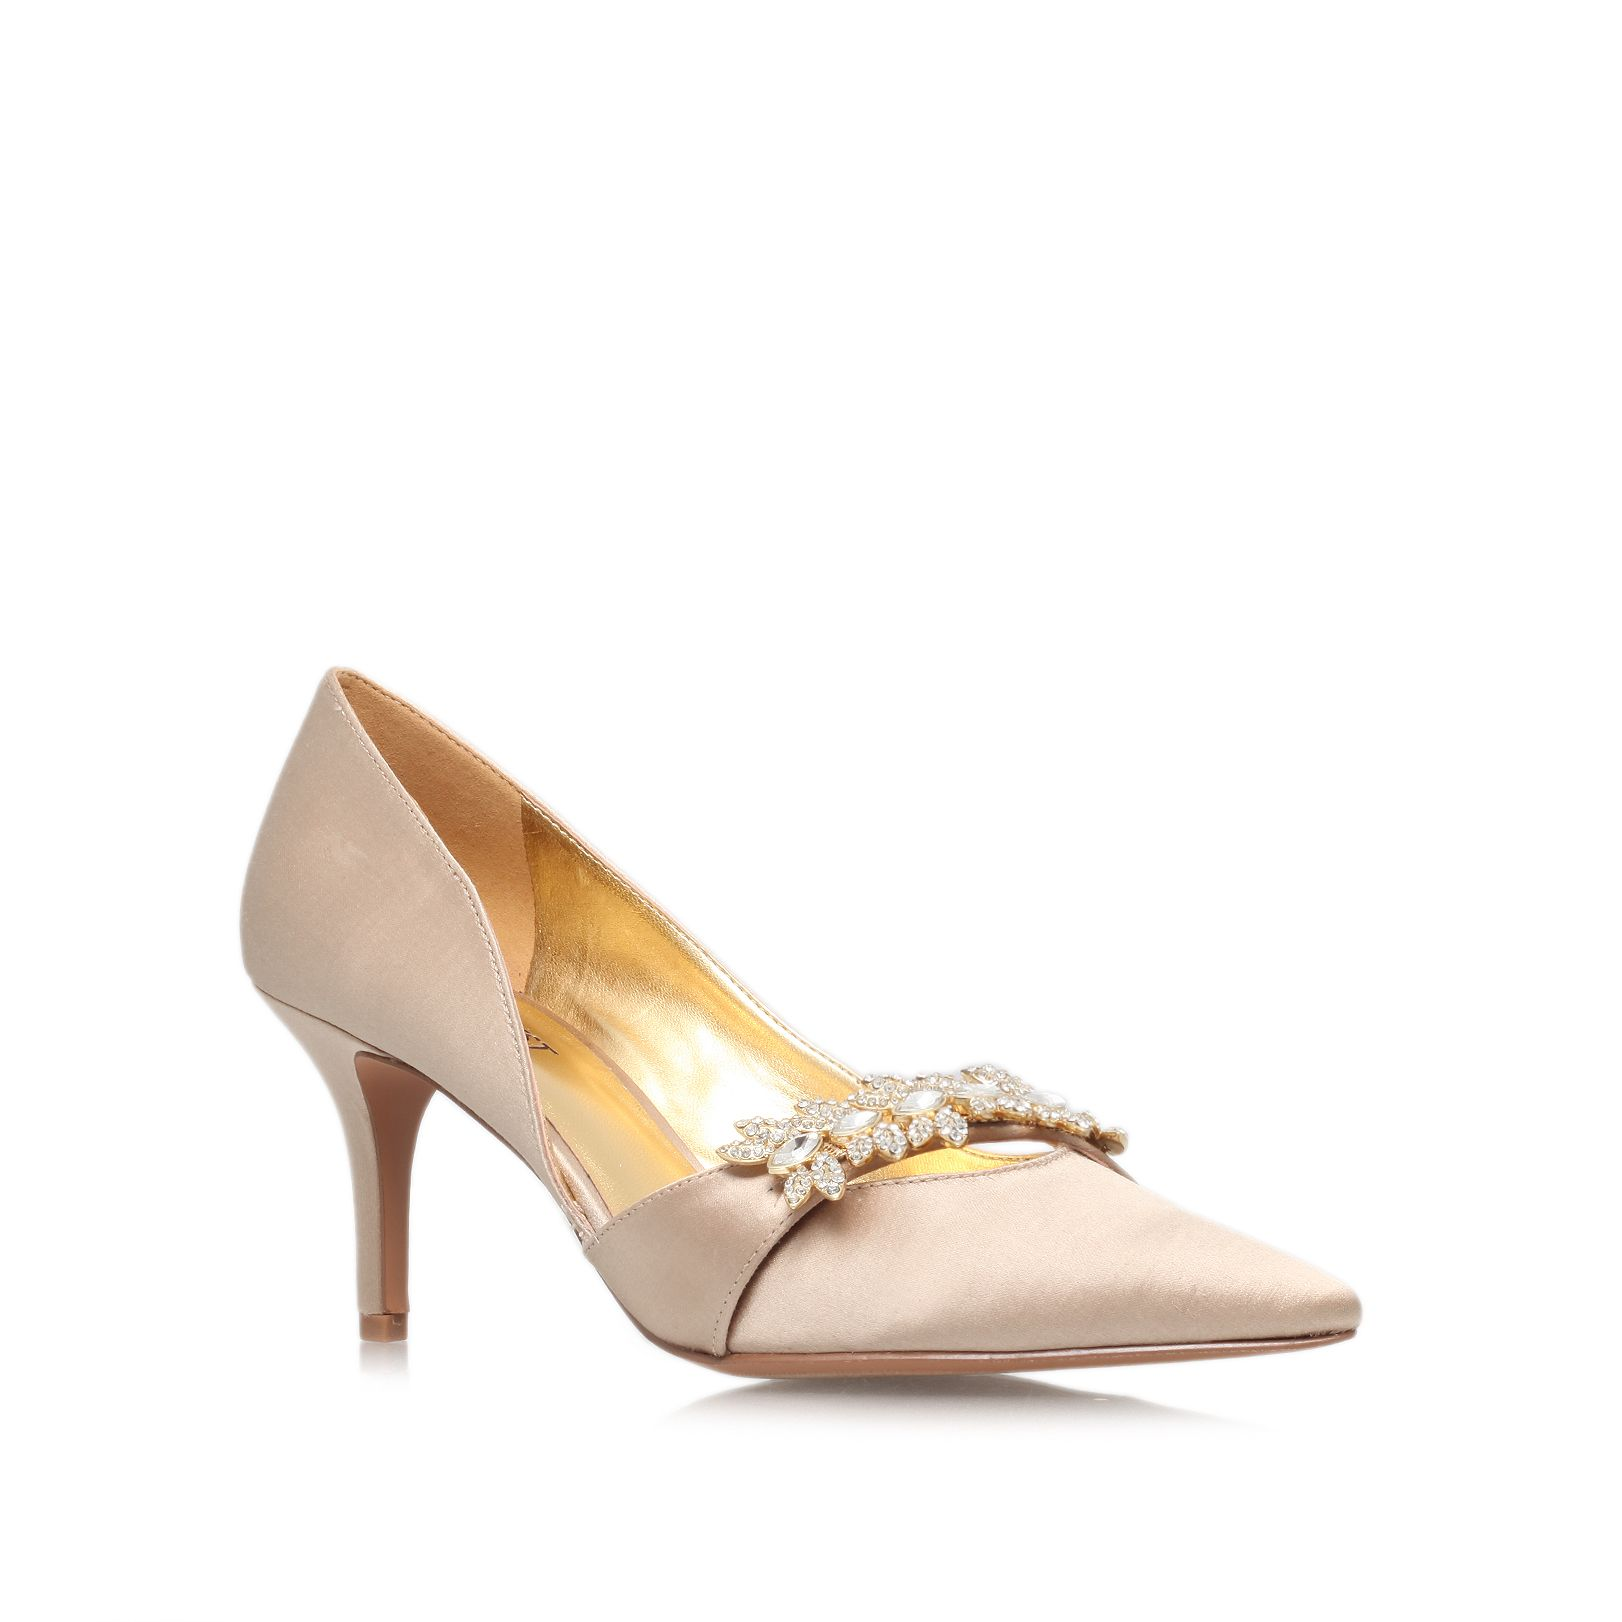 Krista2 low heeled court shoes